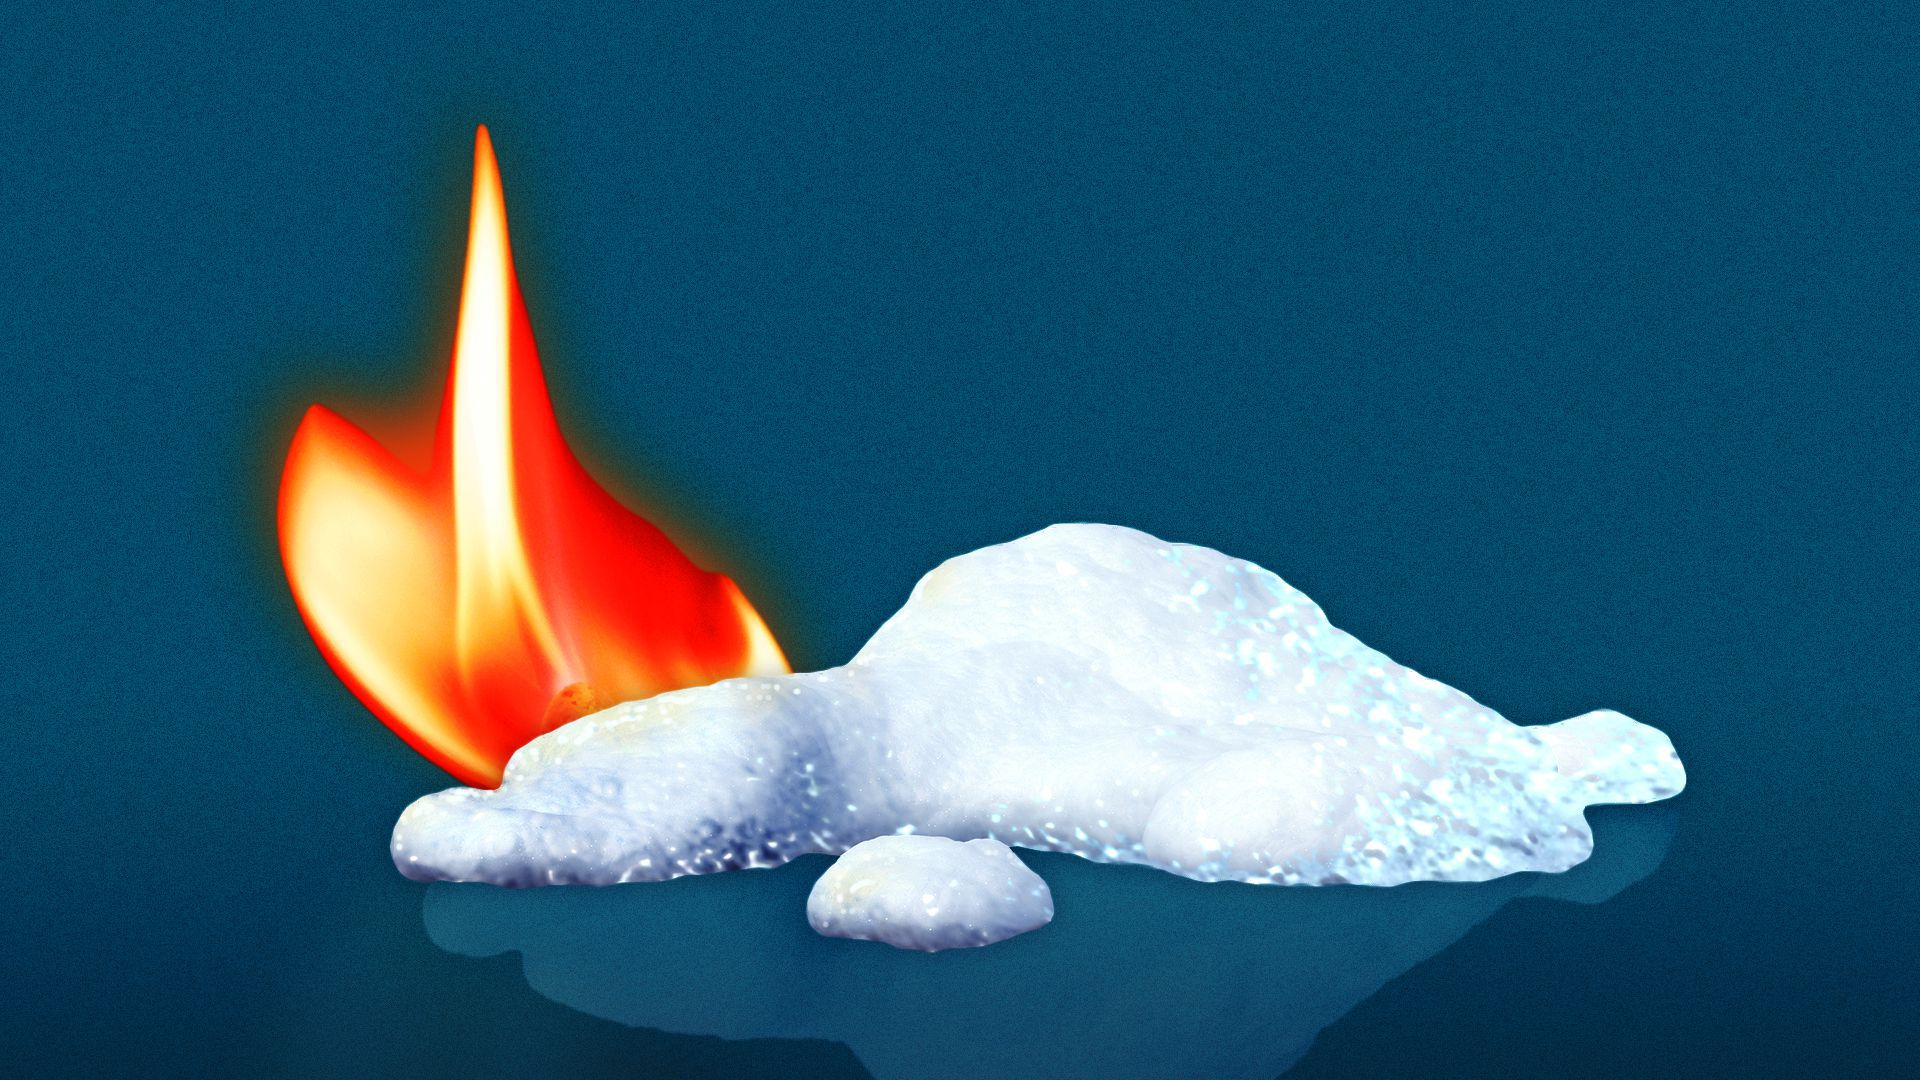 Illustration of pile of melting snow next to a flame